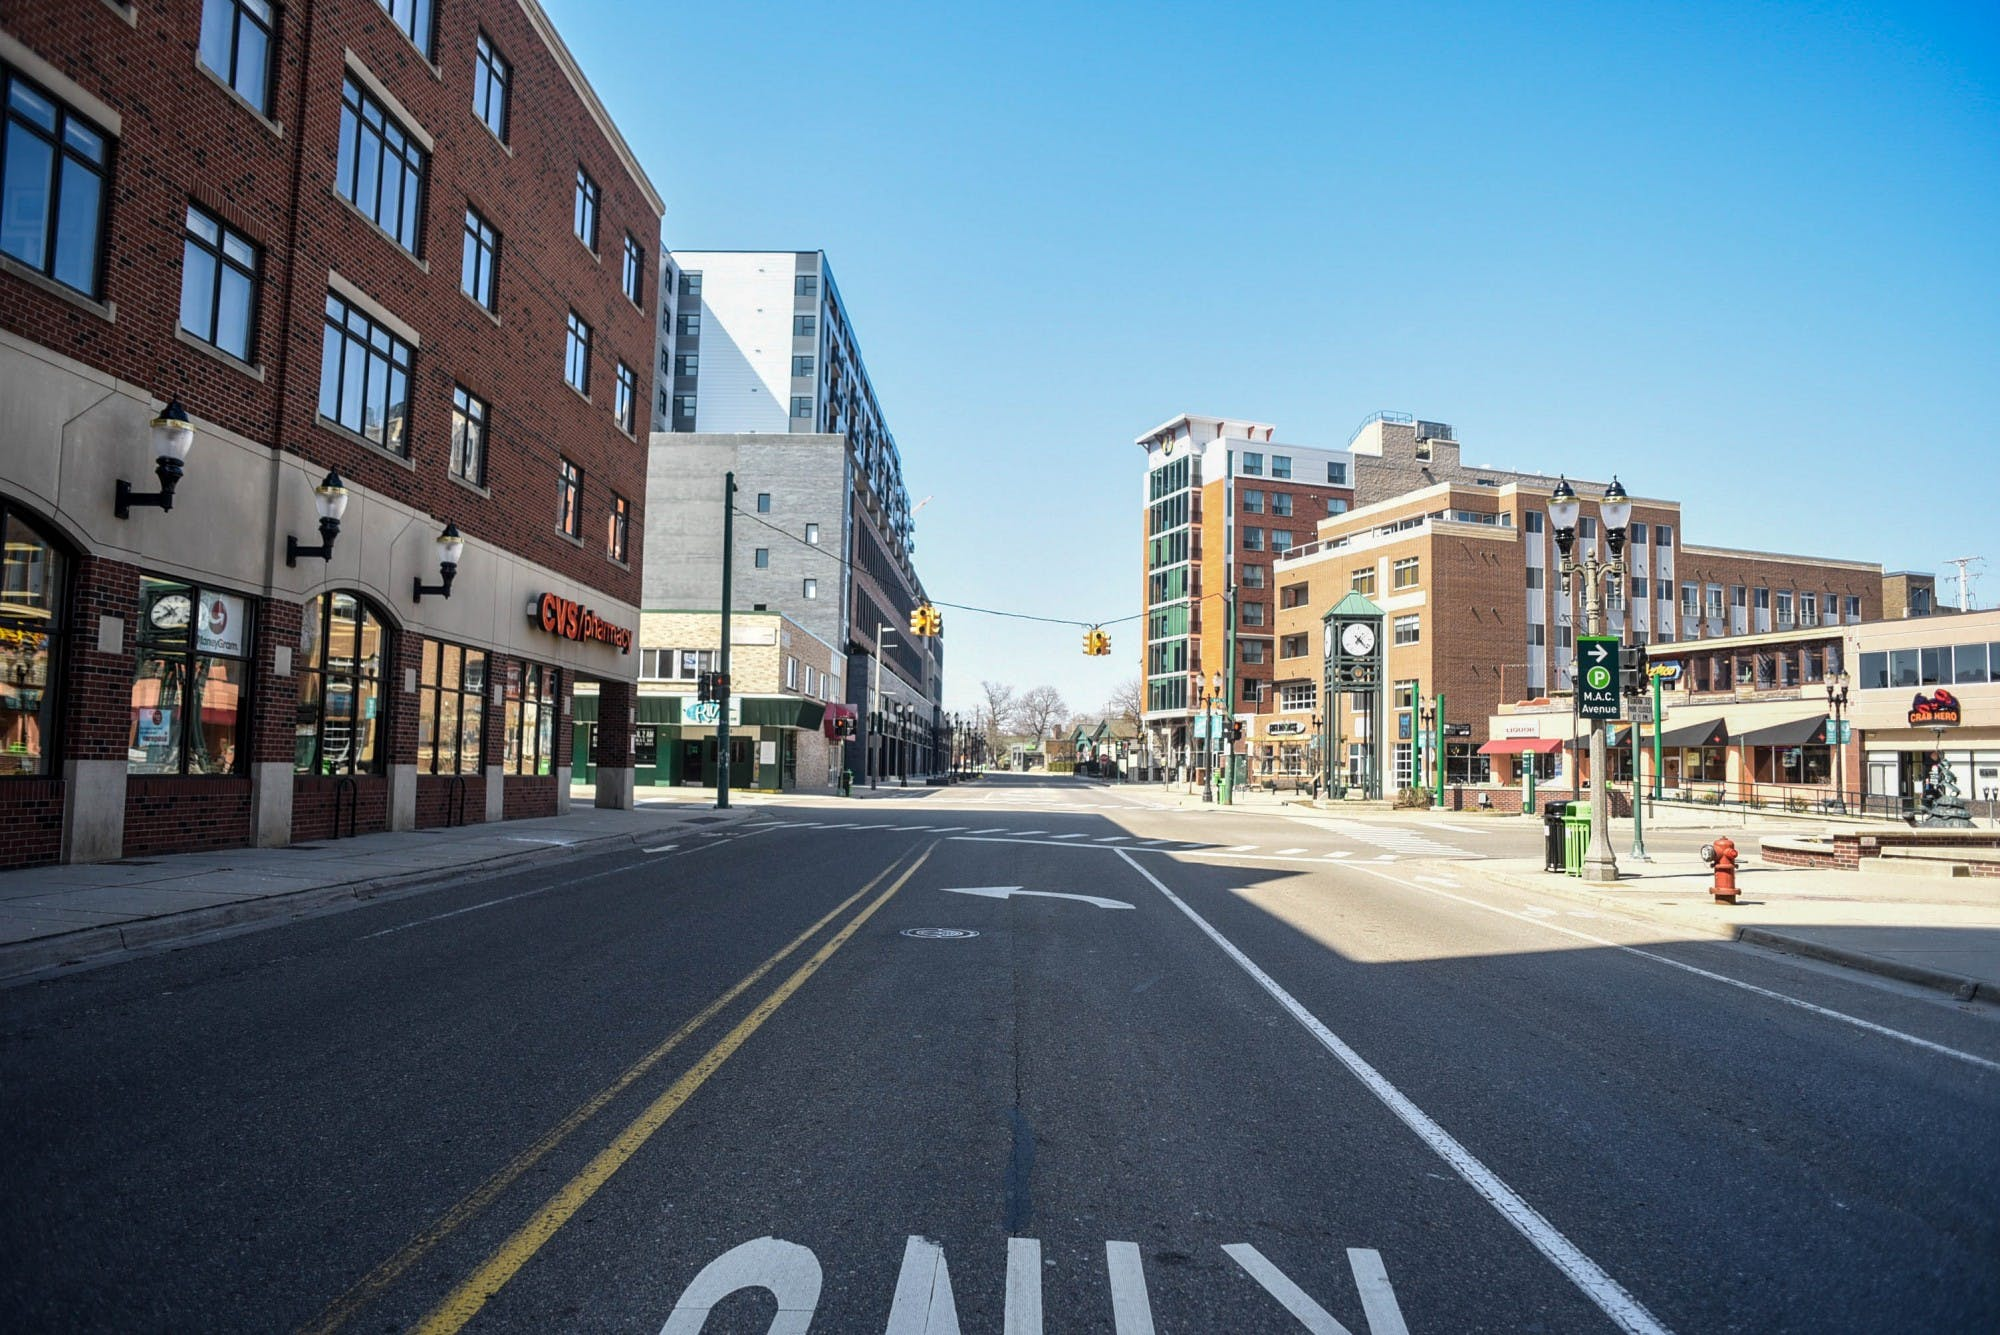 A street is empty of cars and people. On both sides of the road are tall, brick buildings. A stoplight hangs over the street's intersection.